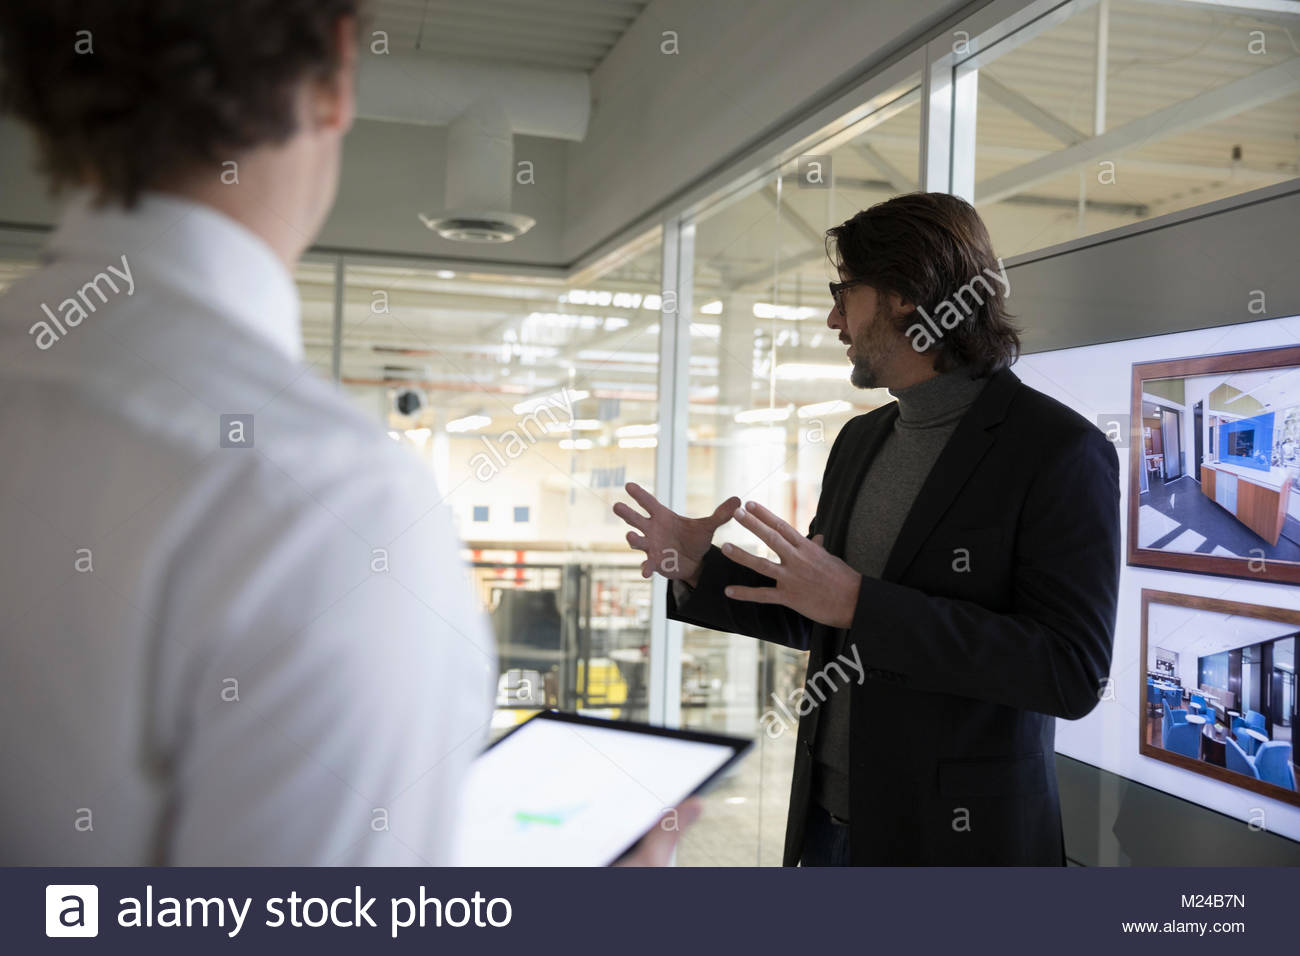 Architect leading meeting at screen in office - Stock Image